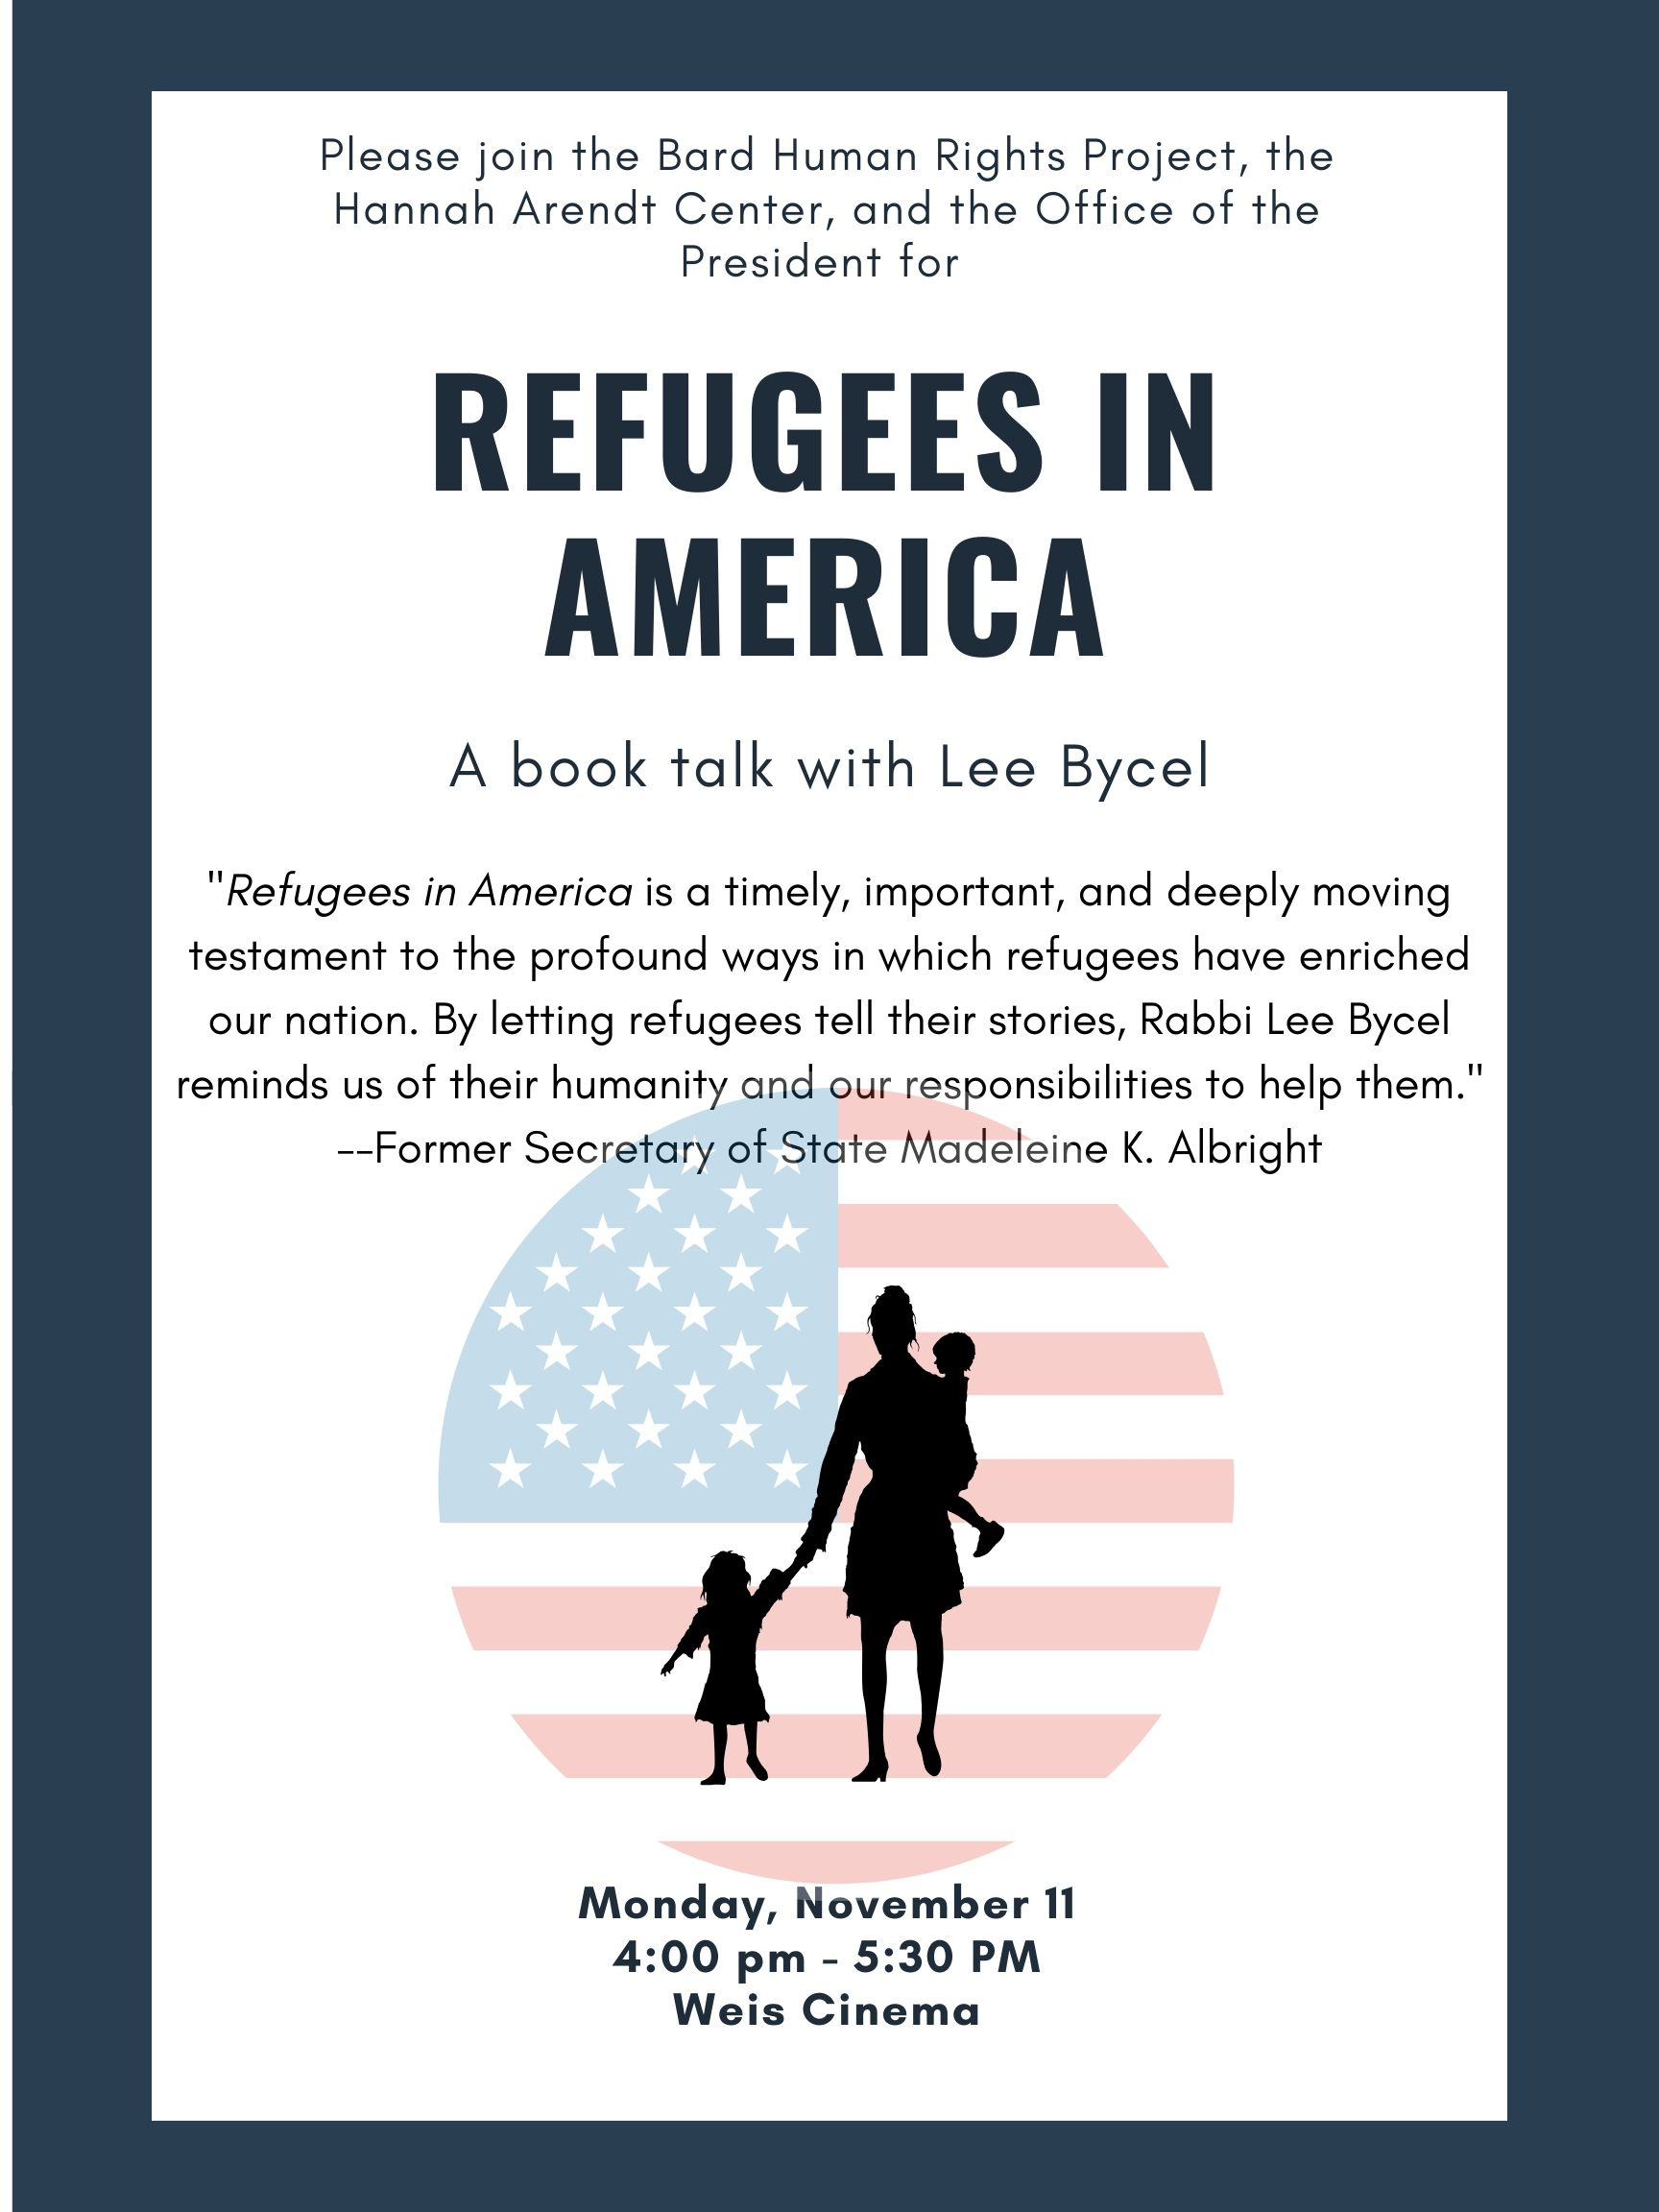 [Refugees in America]